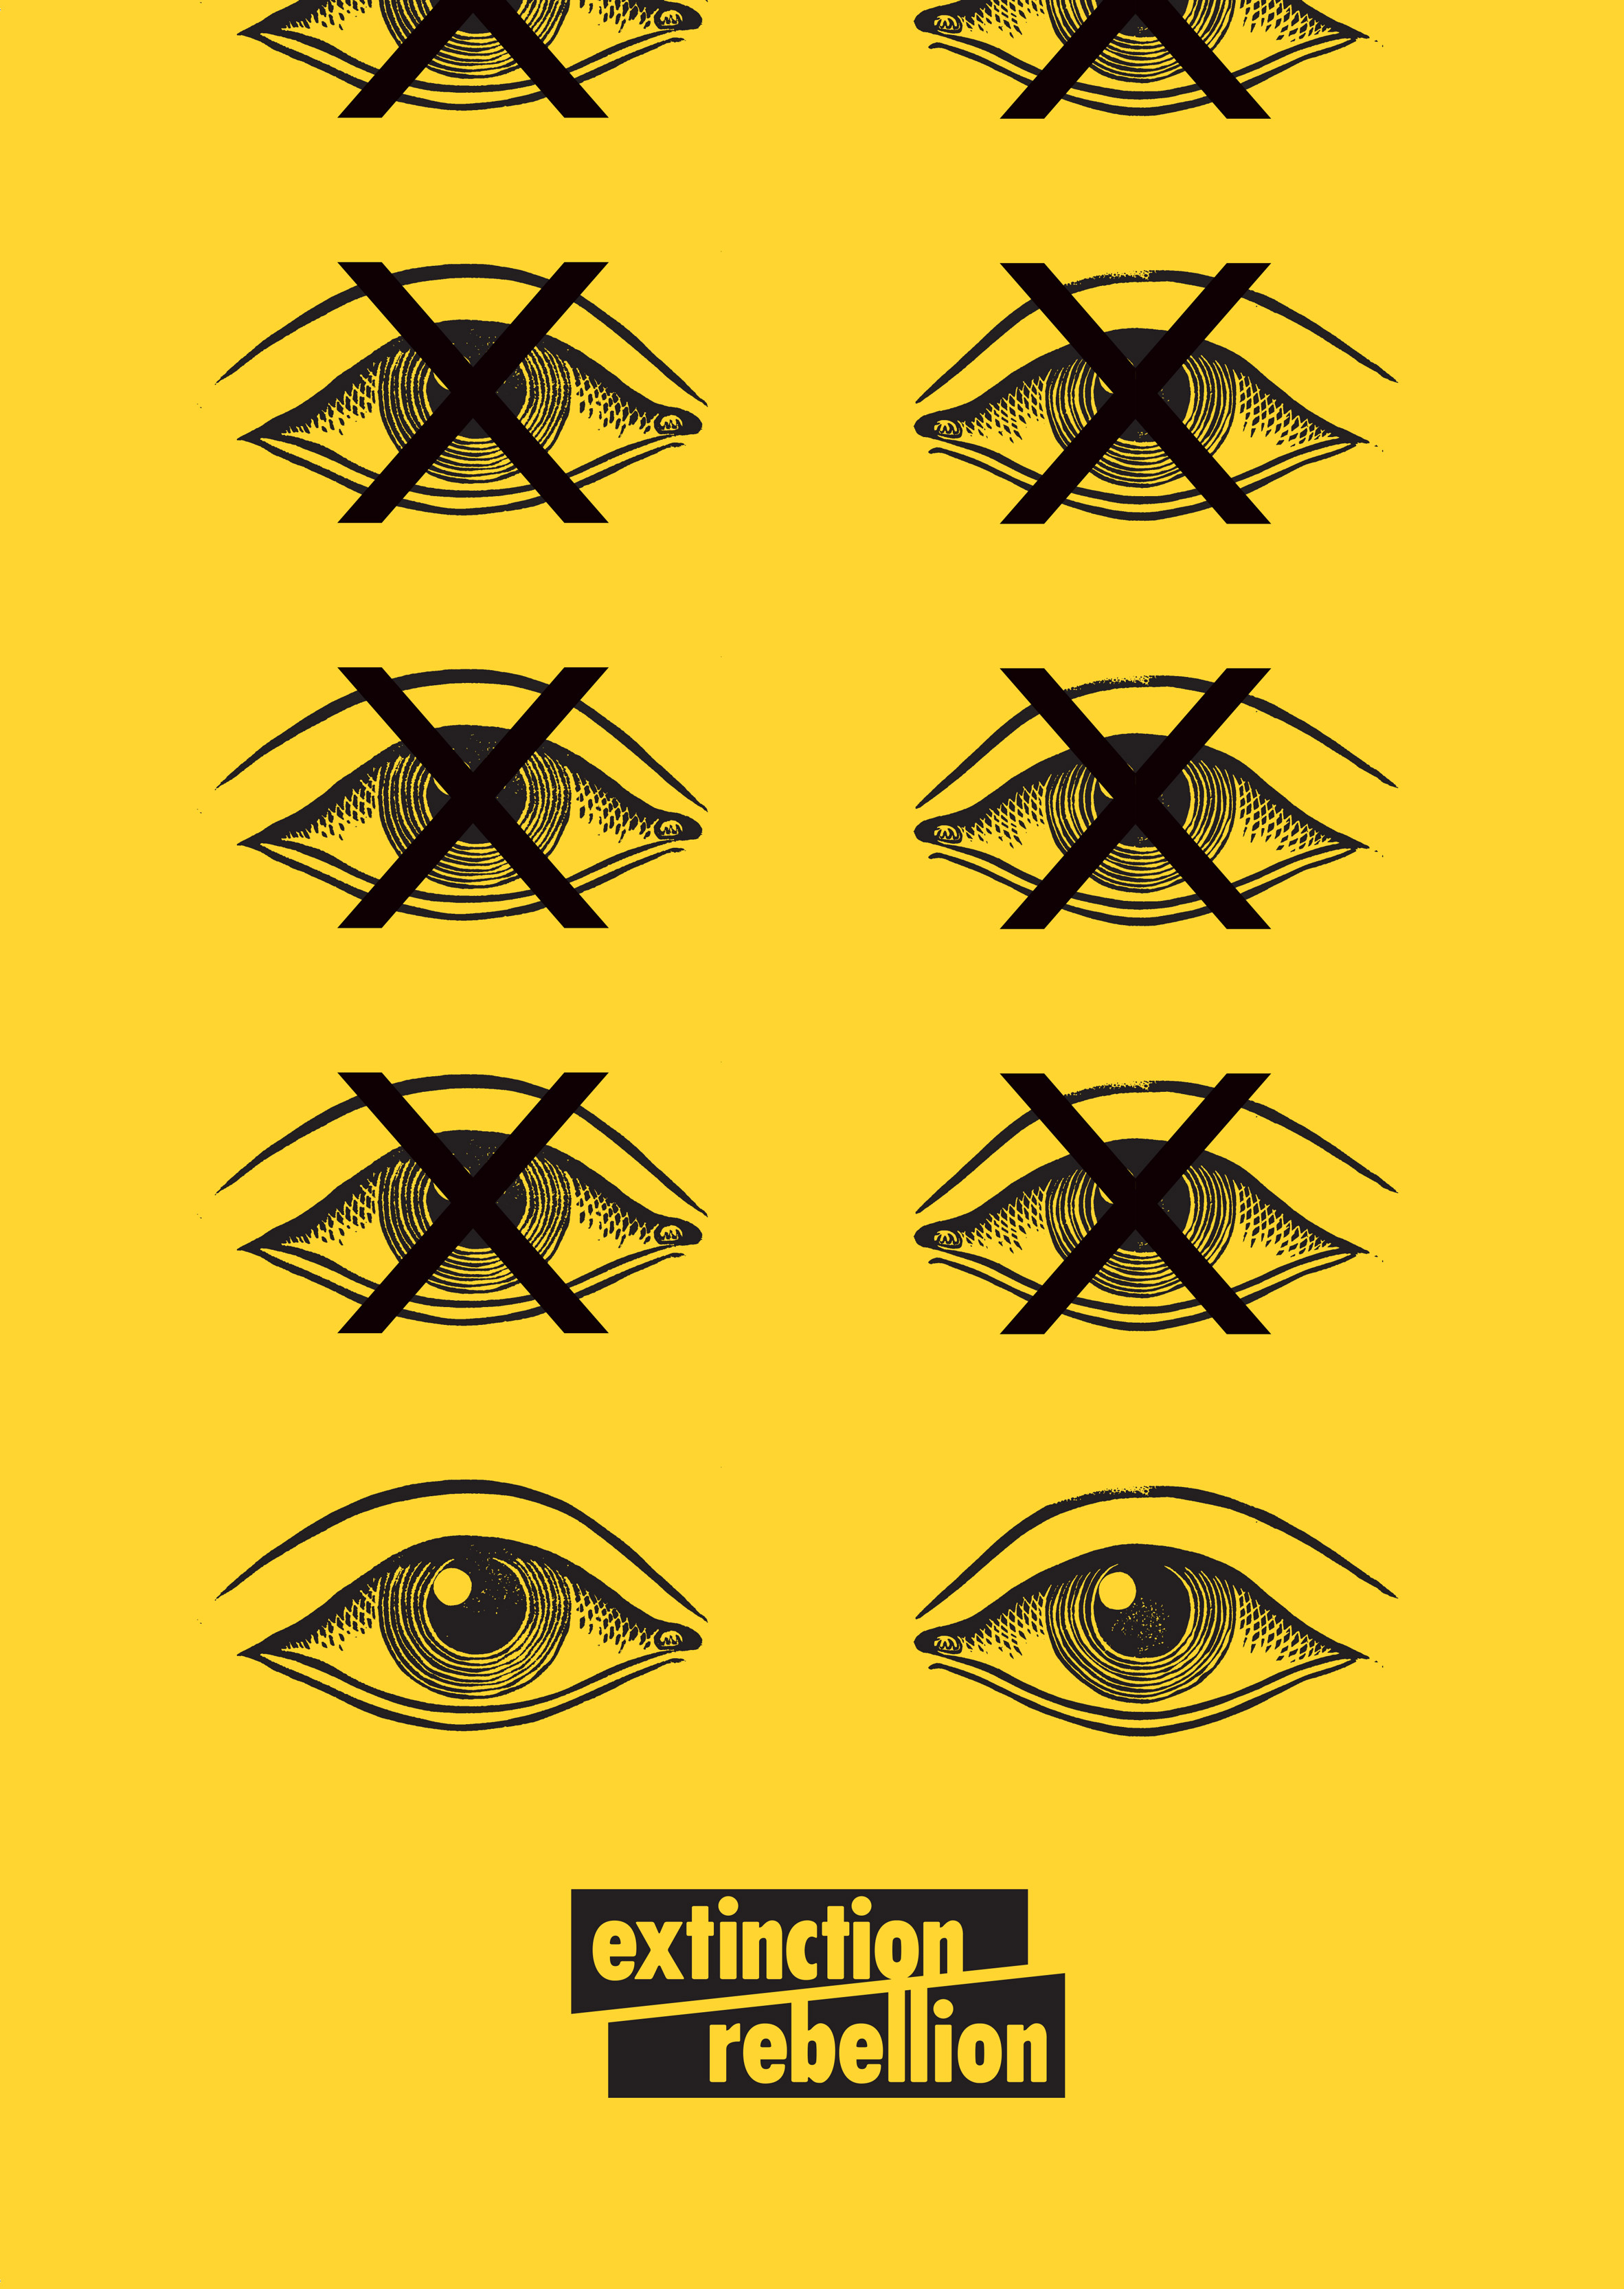 extinction-rebellion-climate-change-graphic-design_dezeen_1704_col_18.jpg